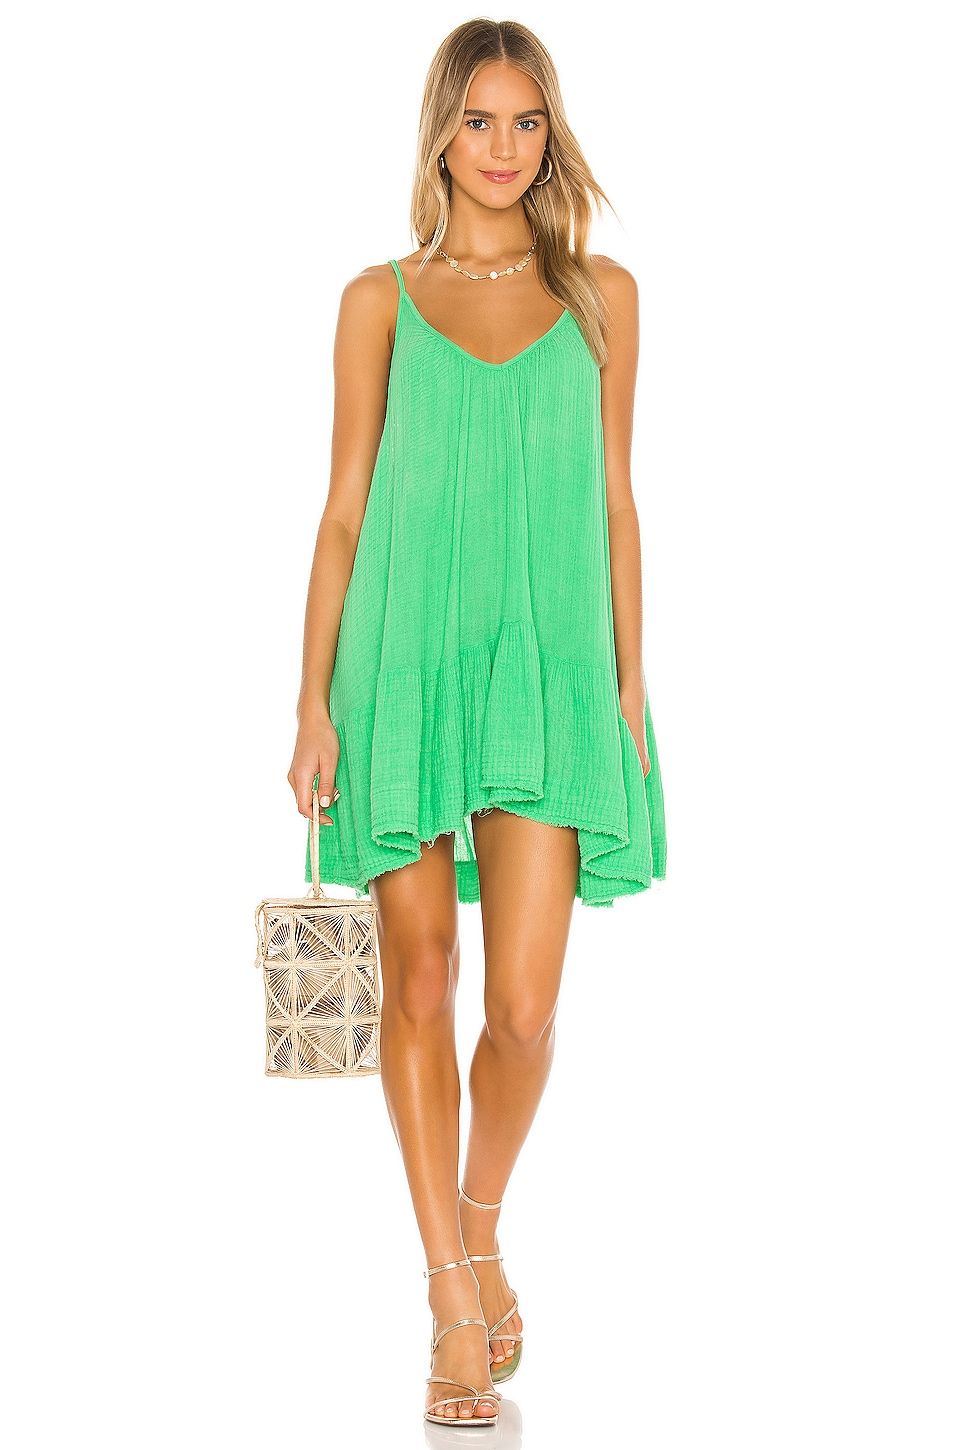 St Tropez Ruffle Mini Dress             9 Seed                                                                                                       CA$ 209.51 6